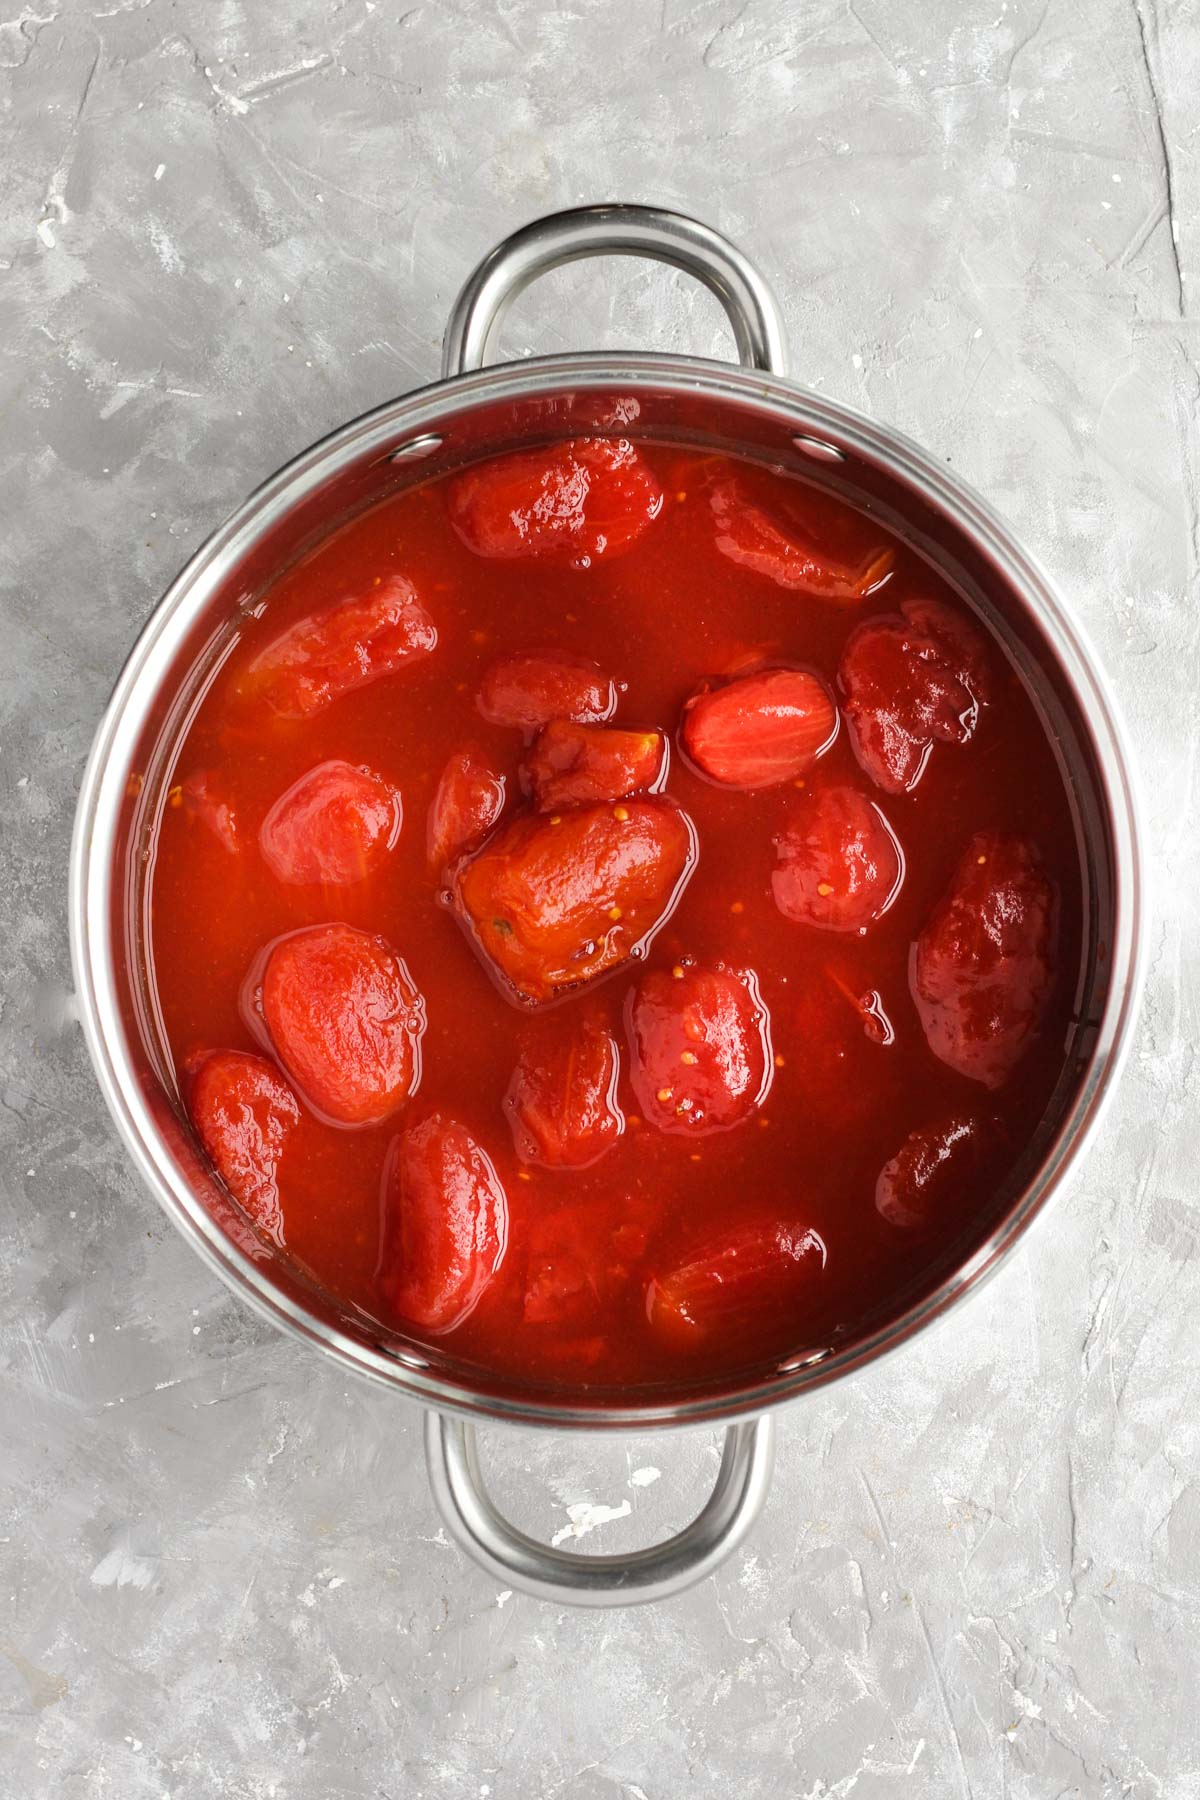 Whole peeled tomatoes in sauce pan.